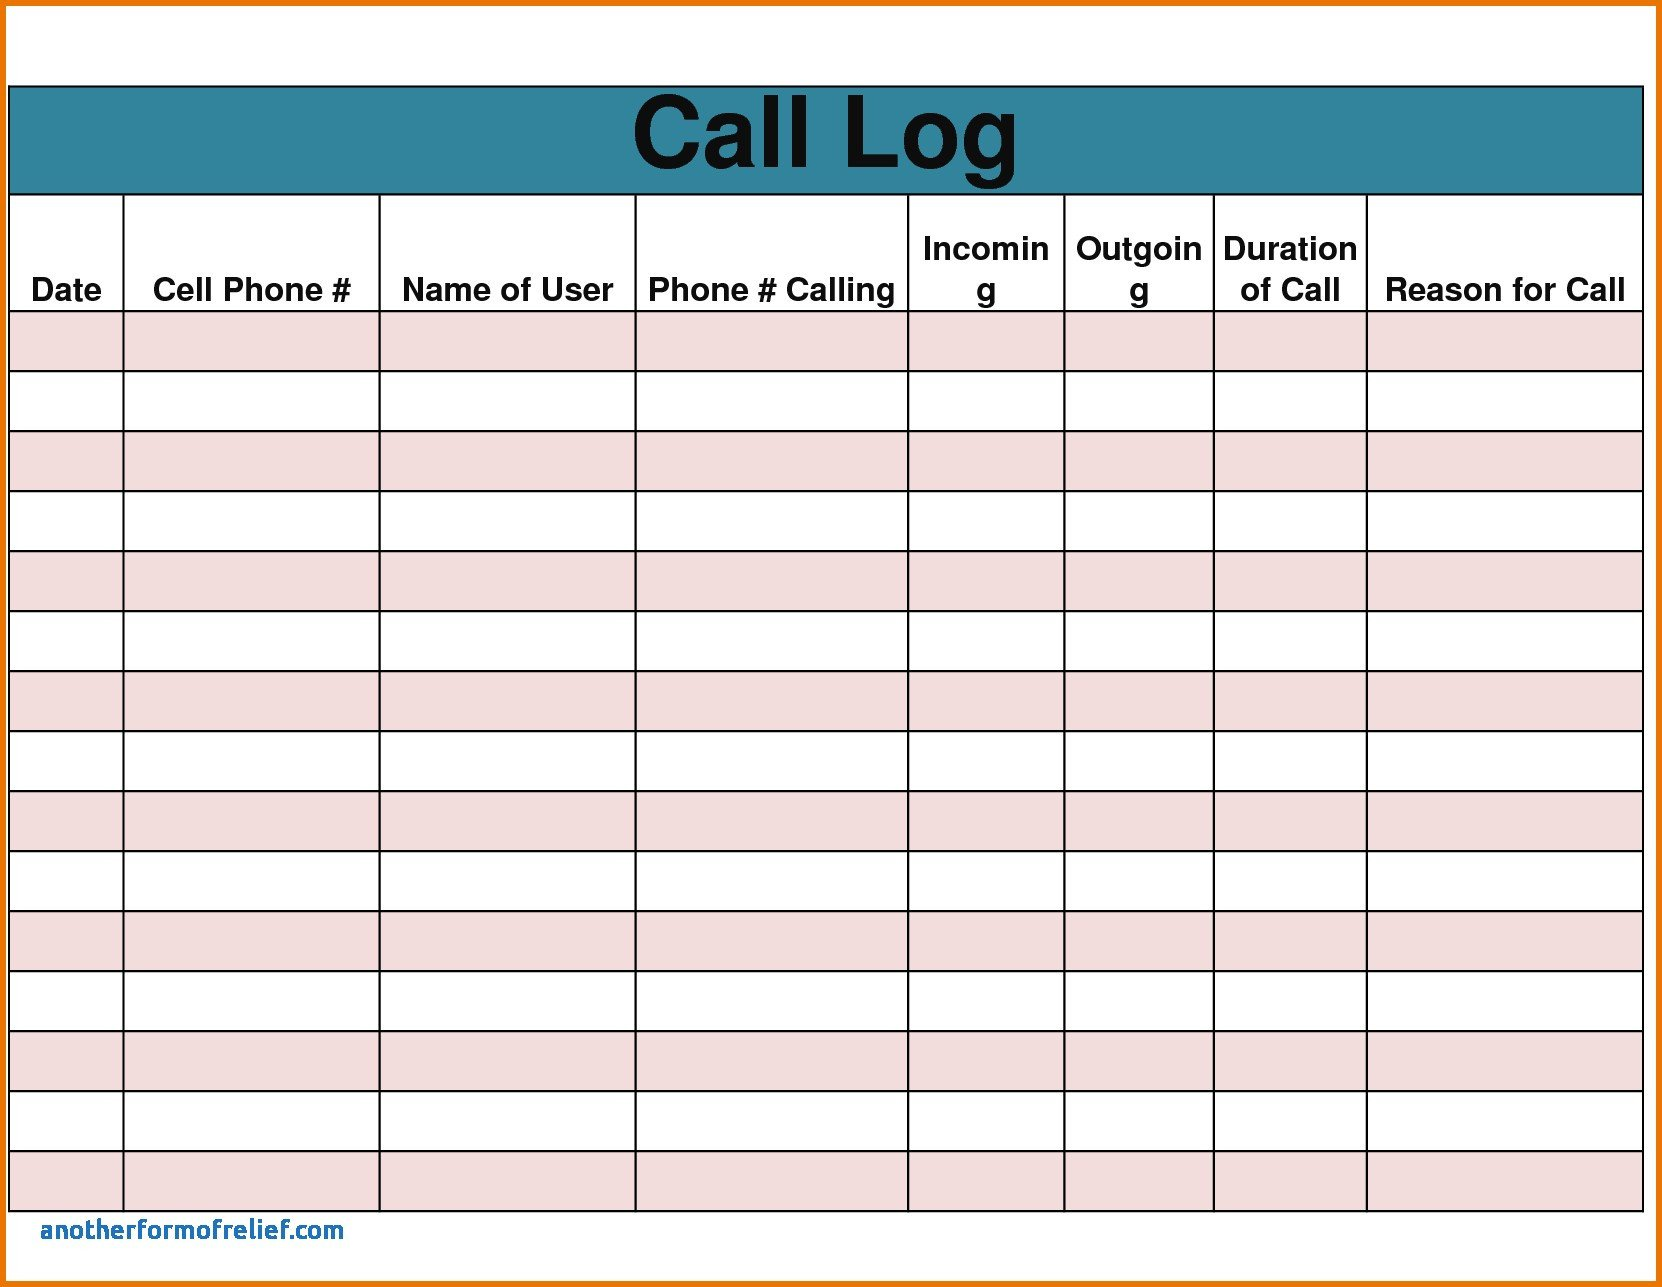 Call Log Template Excel Sales Call Report – Emmamcintyrephotography